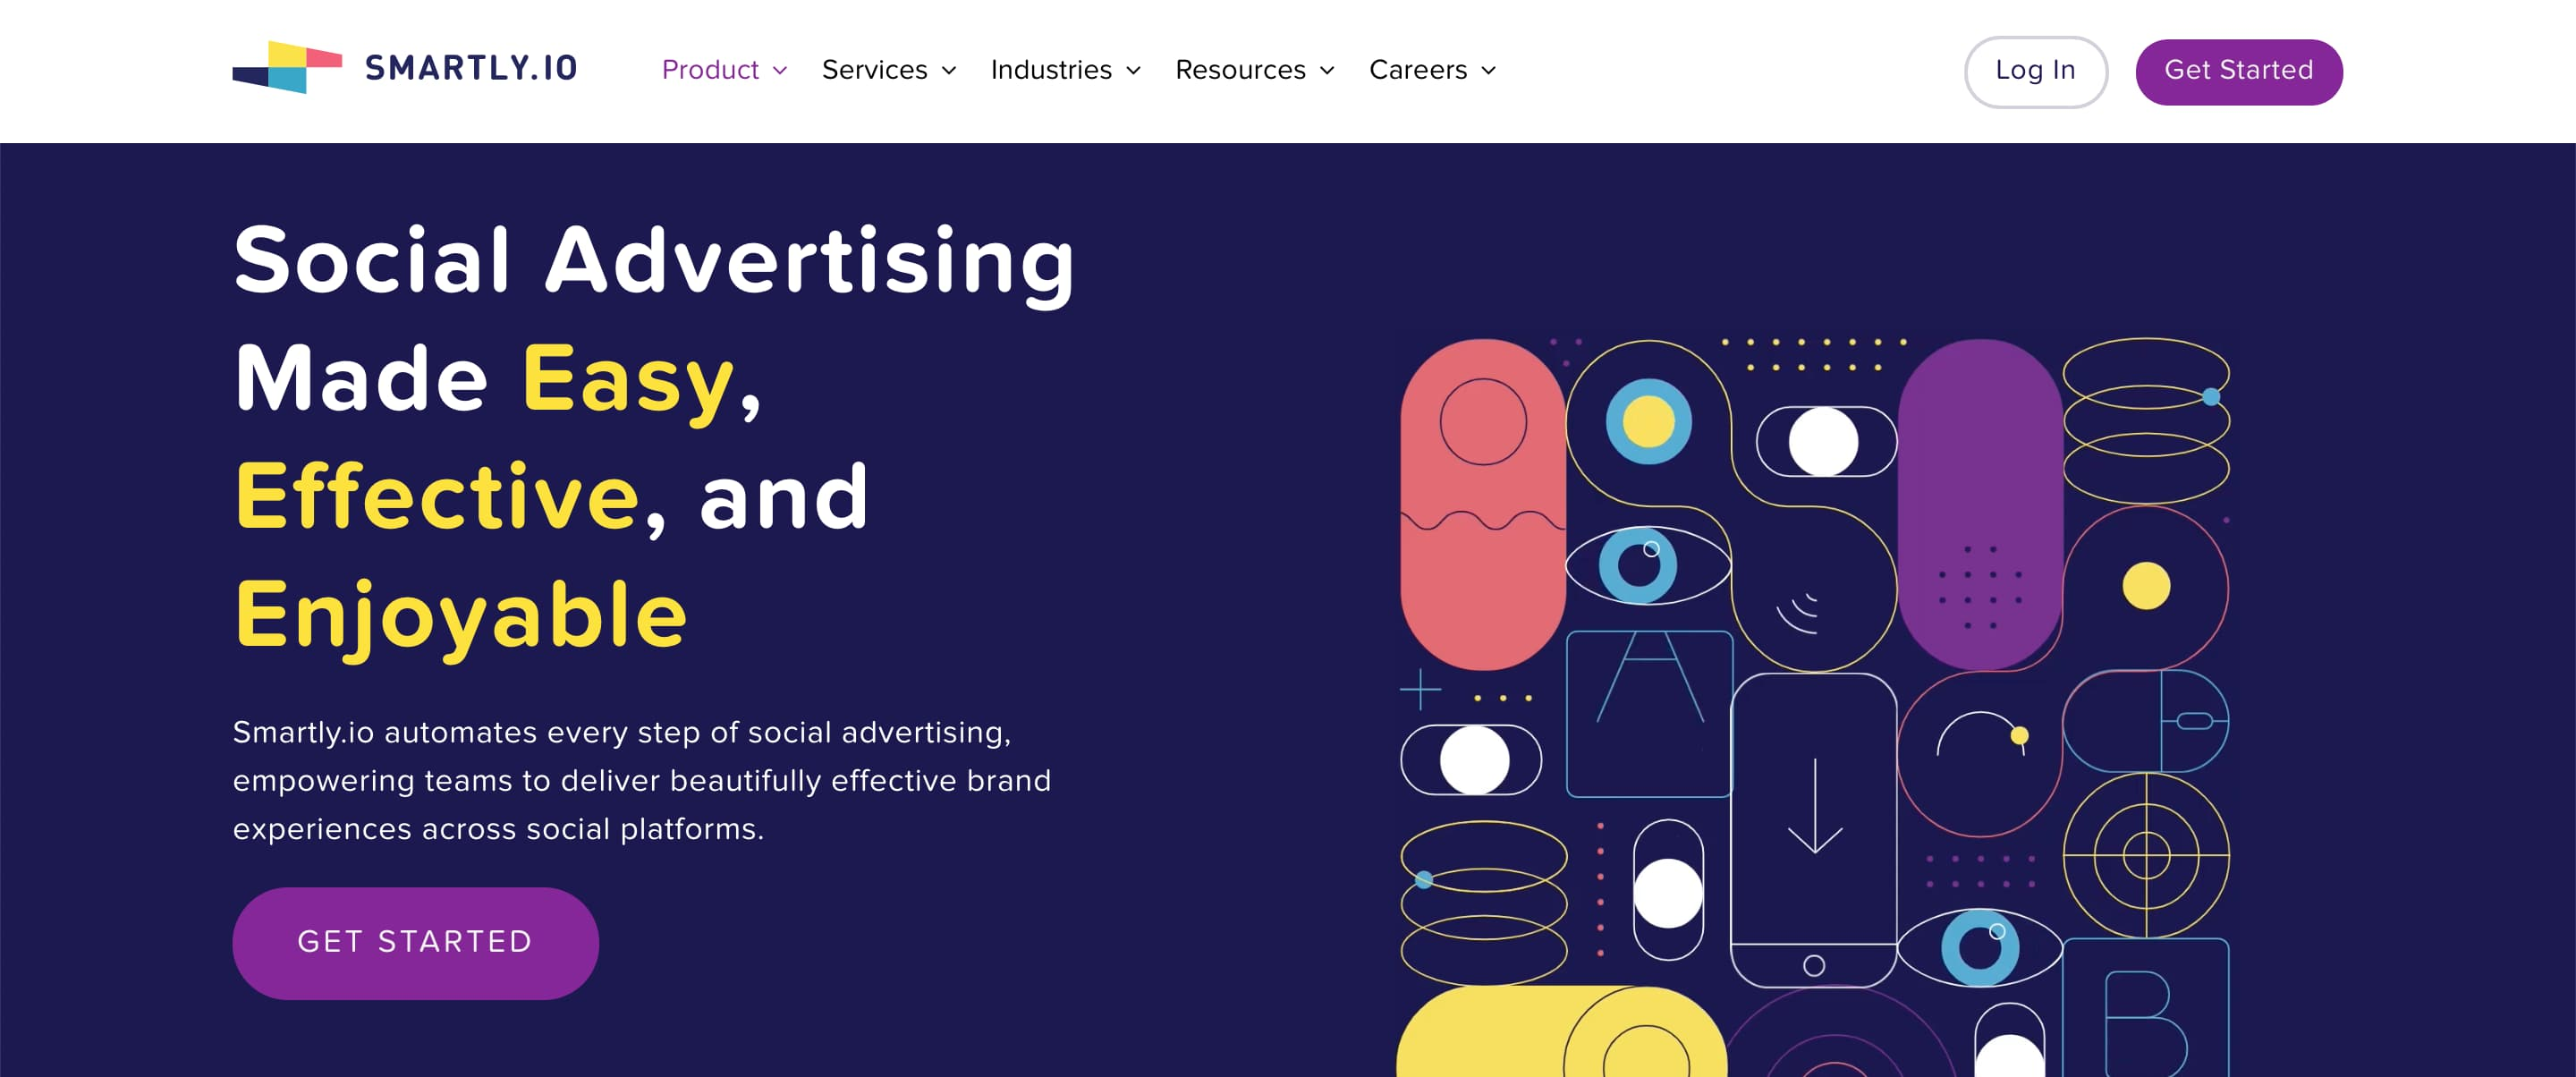 smartly.io advertising management system example